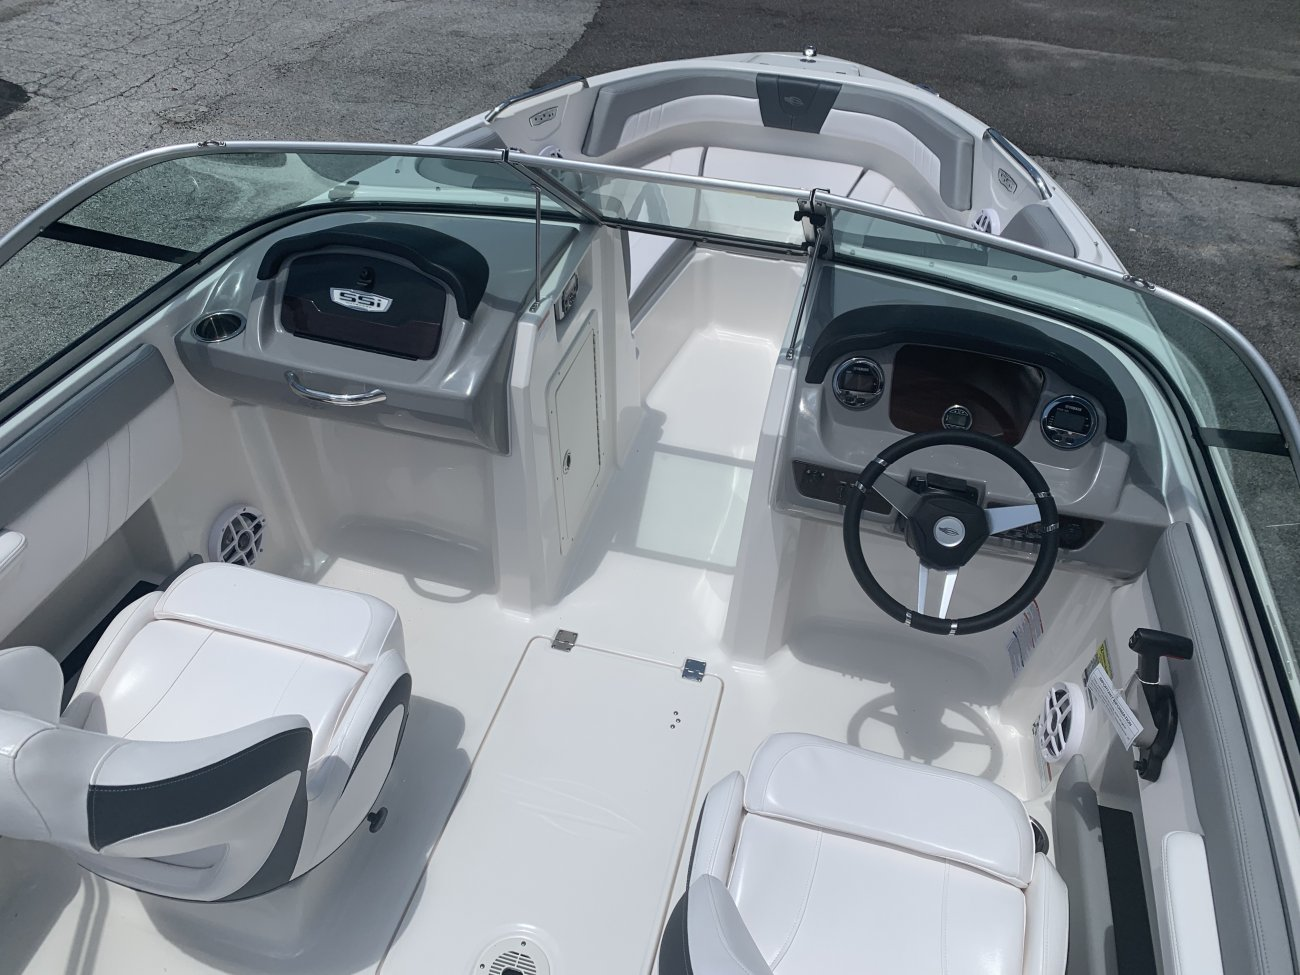 Chaparral Boats. Our track record speaks for itself. Seeing Chaparral on top when it comes to performance, styling, value and innovation should come as no surprise... we've won more than 30 awards for product excellence, a feat few can claim.